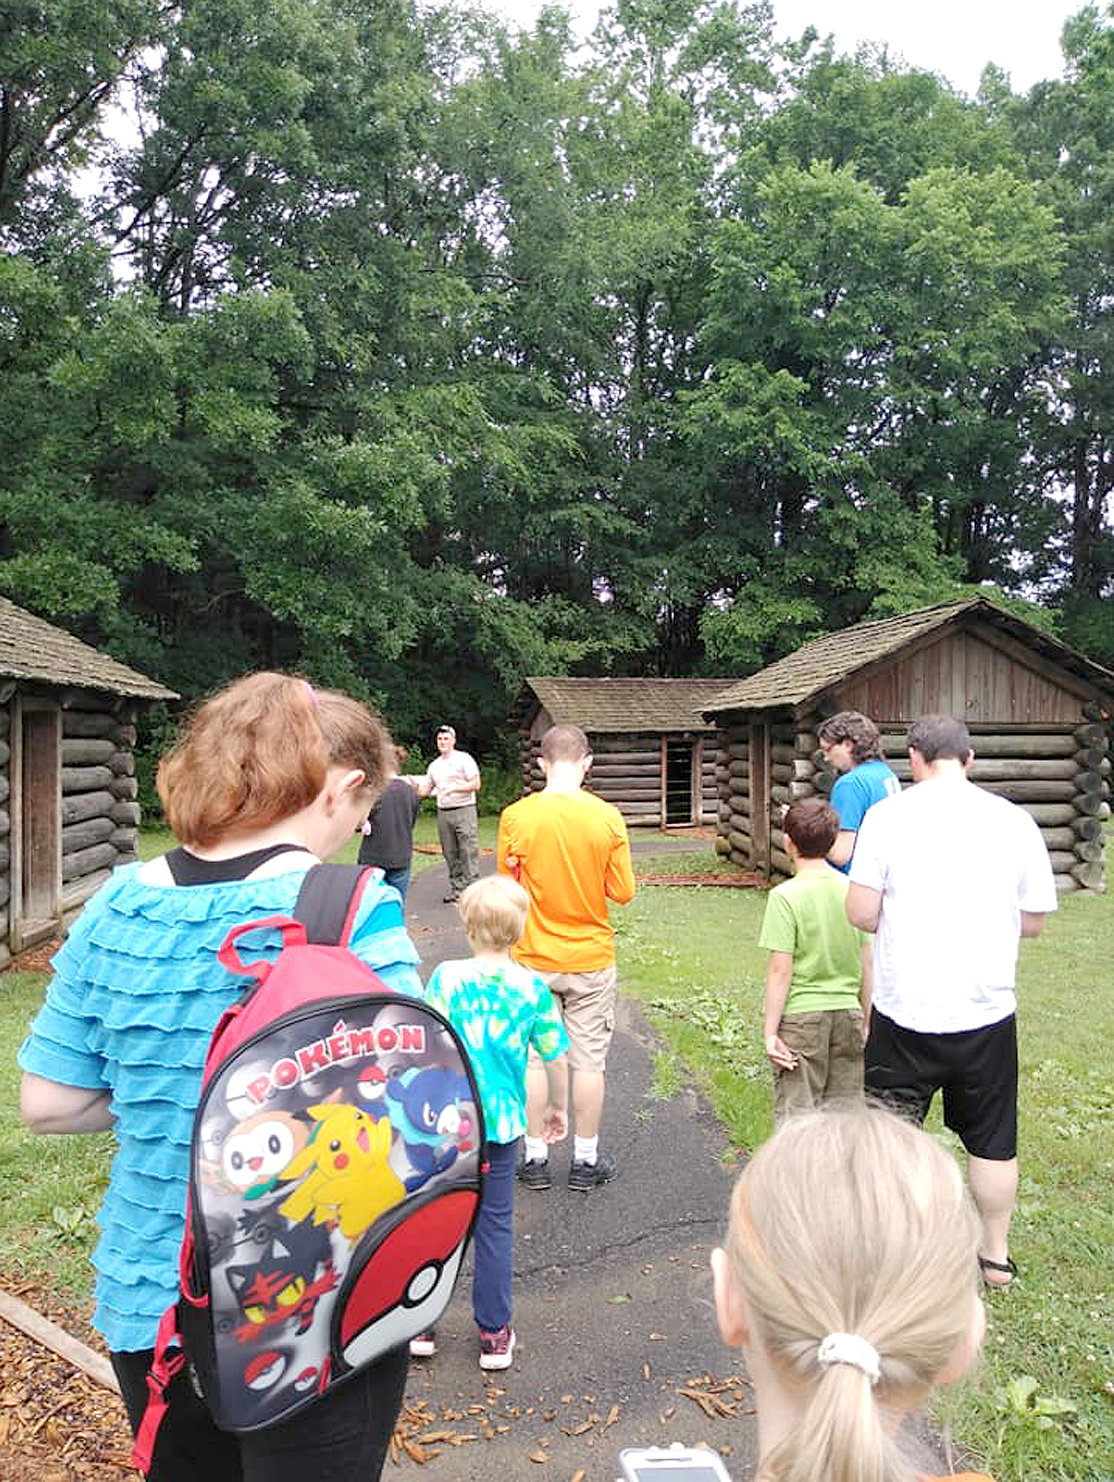 DESPITE A DOWNPOUR, a group of around 11-12 people came for the Red Clay historical tour and Pokemon Go Community Day at the park on June 8. In addition to the tour group, around 20 others came exclusively for the nine Poke-stops and three Pokemon gyms complete with lures present at Red Clay.